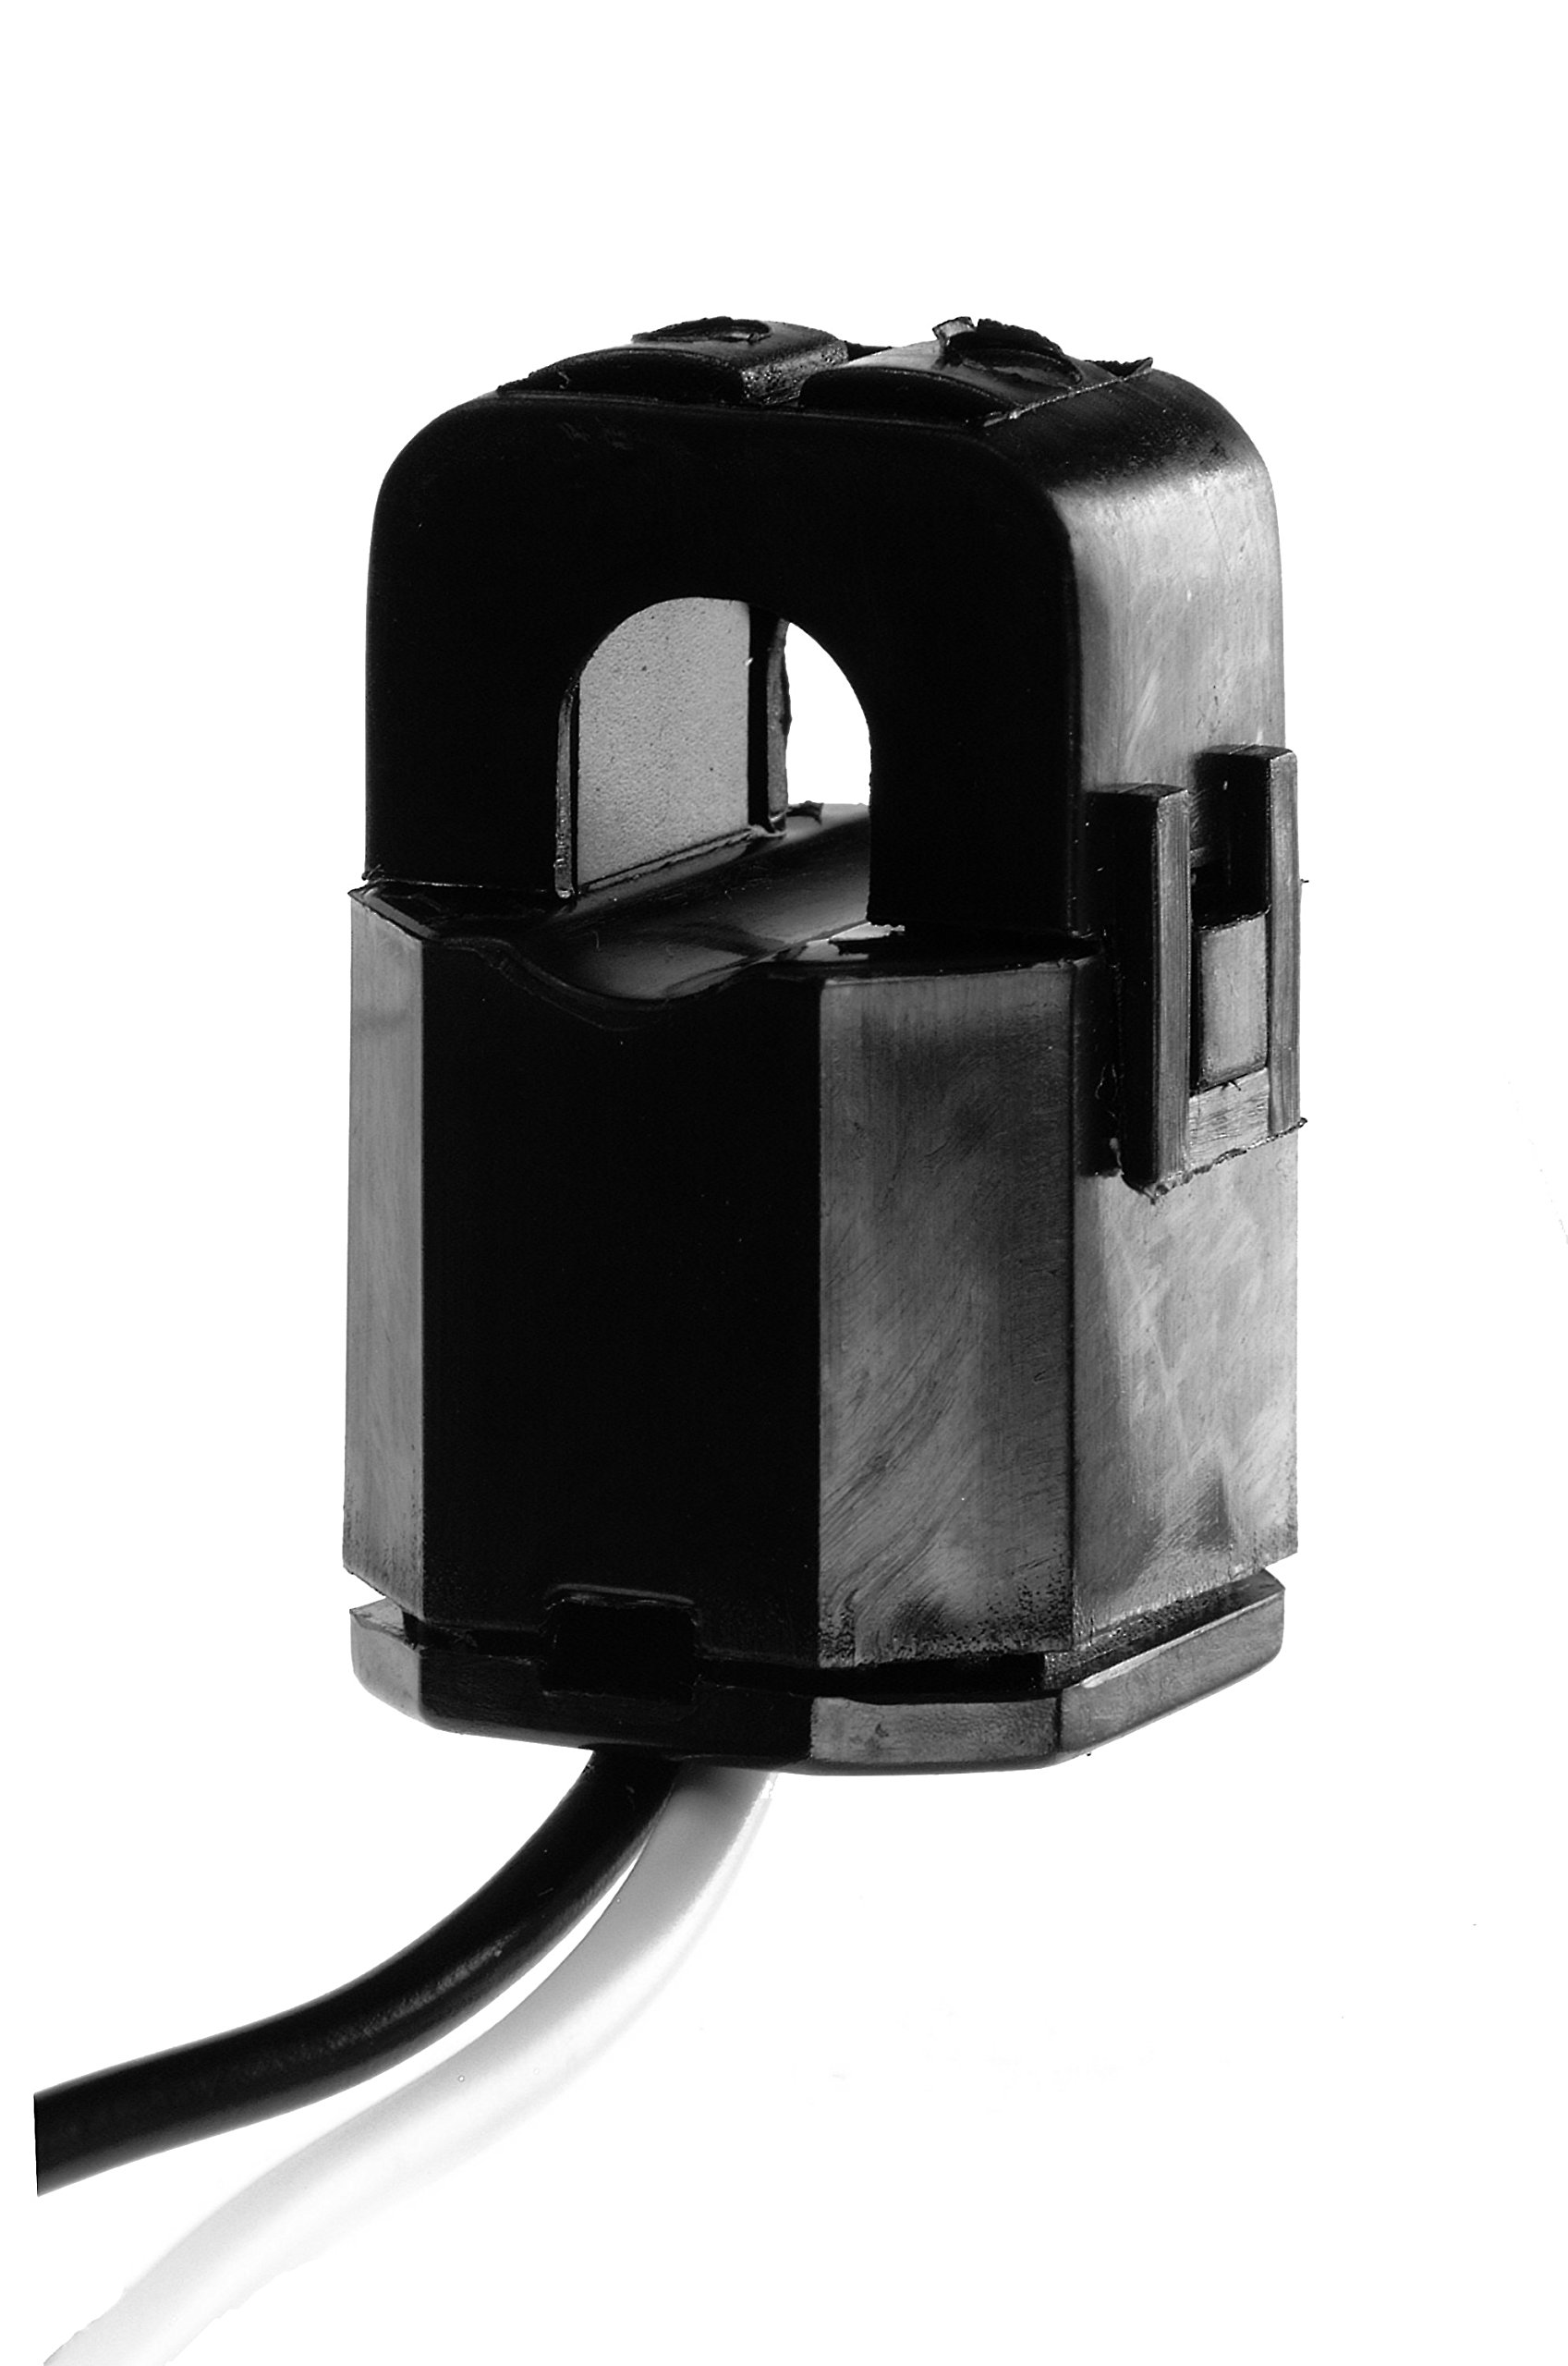 CR Magnetics CR3111-3000 Current Transformer, Low Cost, UL Recognized, 3000 Turn, Split Core, 100 AAC Rated